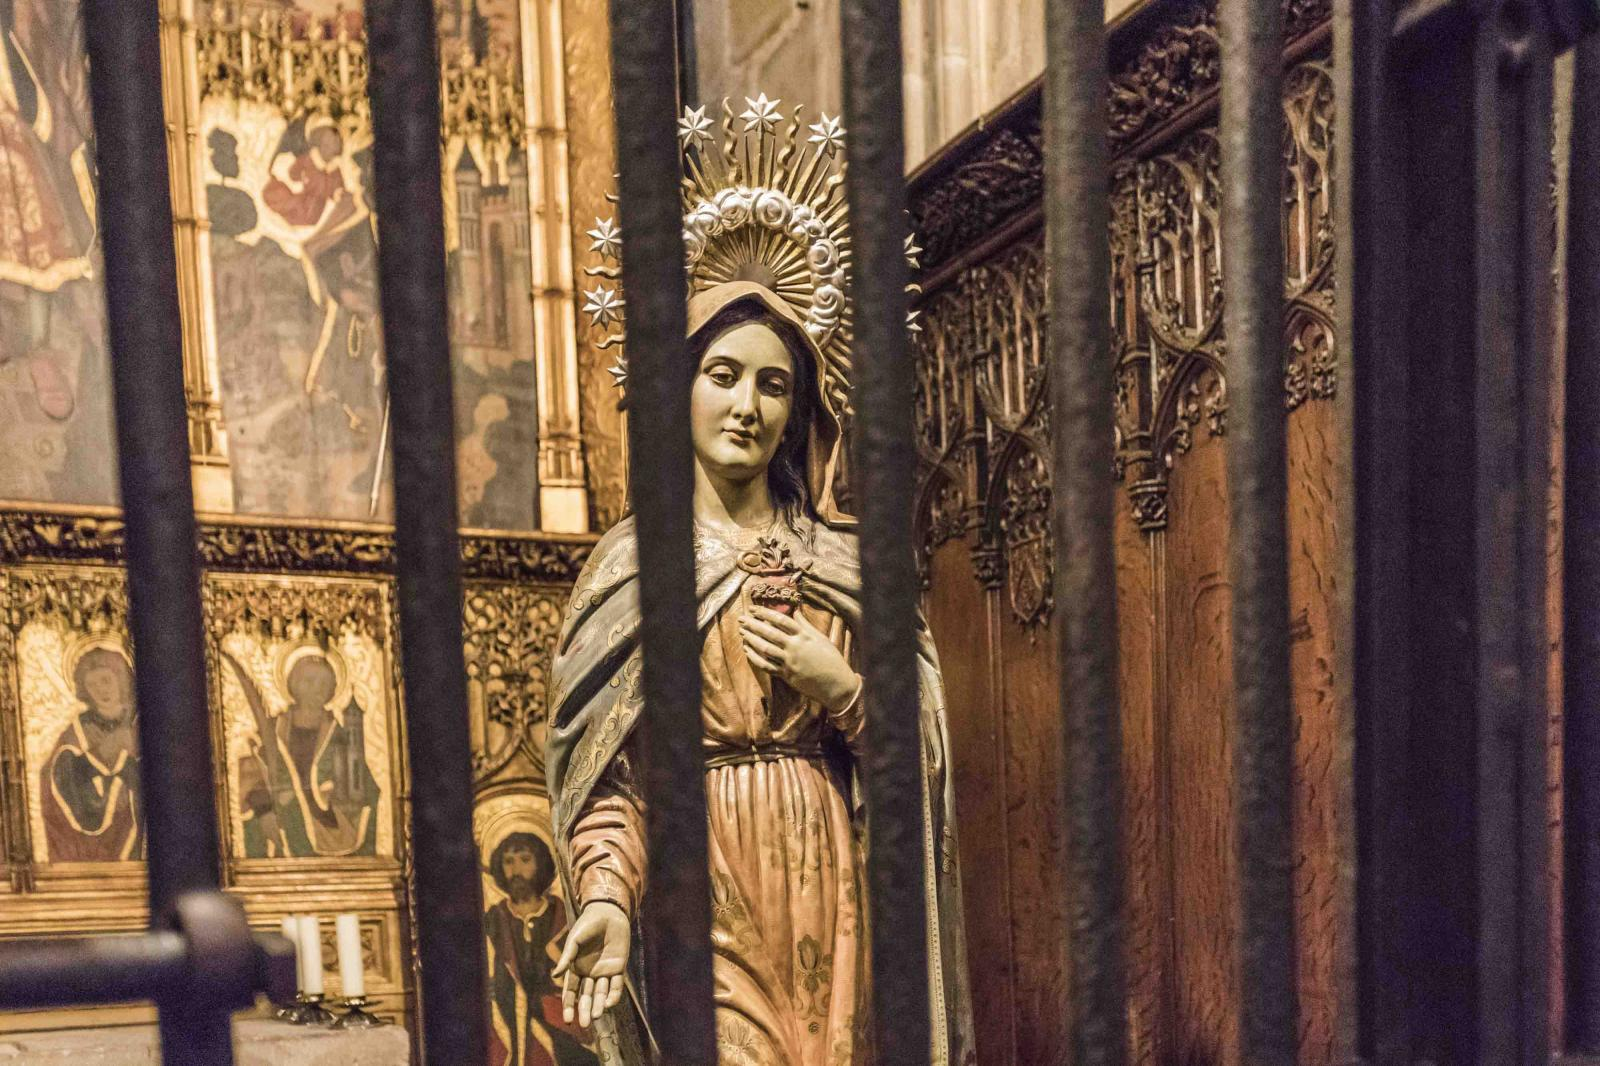 April 10, 2020 - Barcelona, Spain: HOLY FRIDAY at 5:00 pm, in the Cathedral of Barcelona, the Passion of the Lord is celebrated directly and on television without devotees in the Curch.